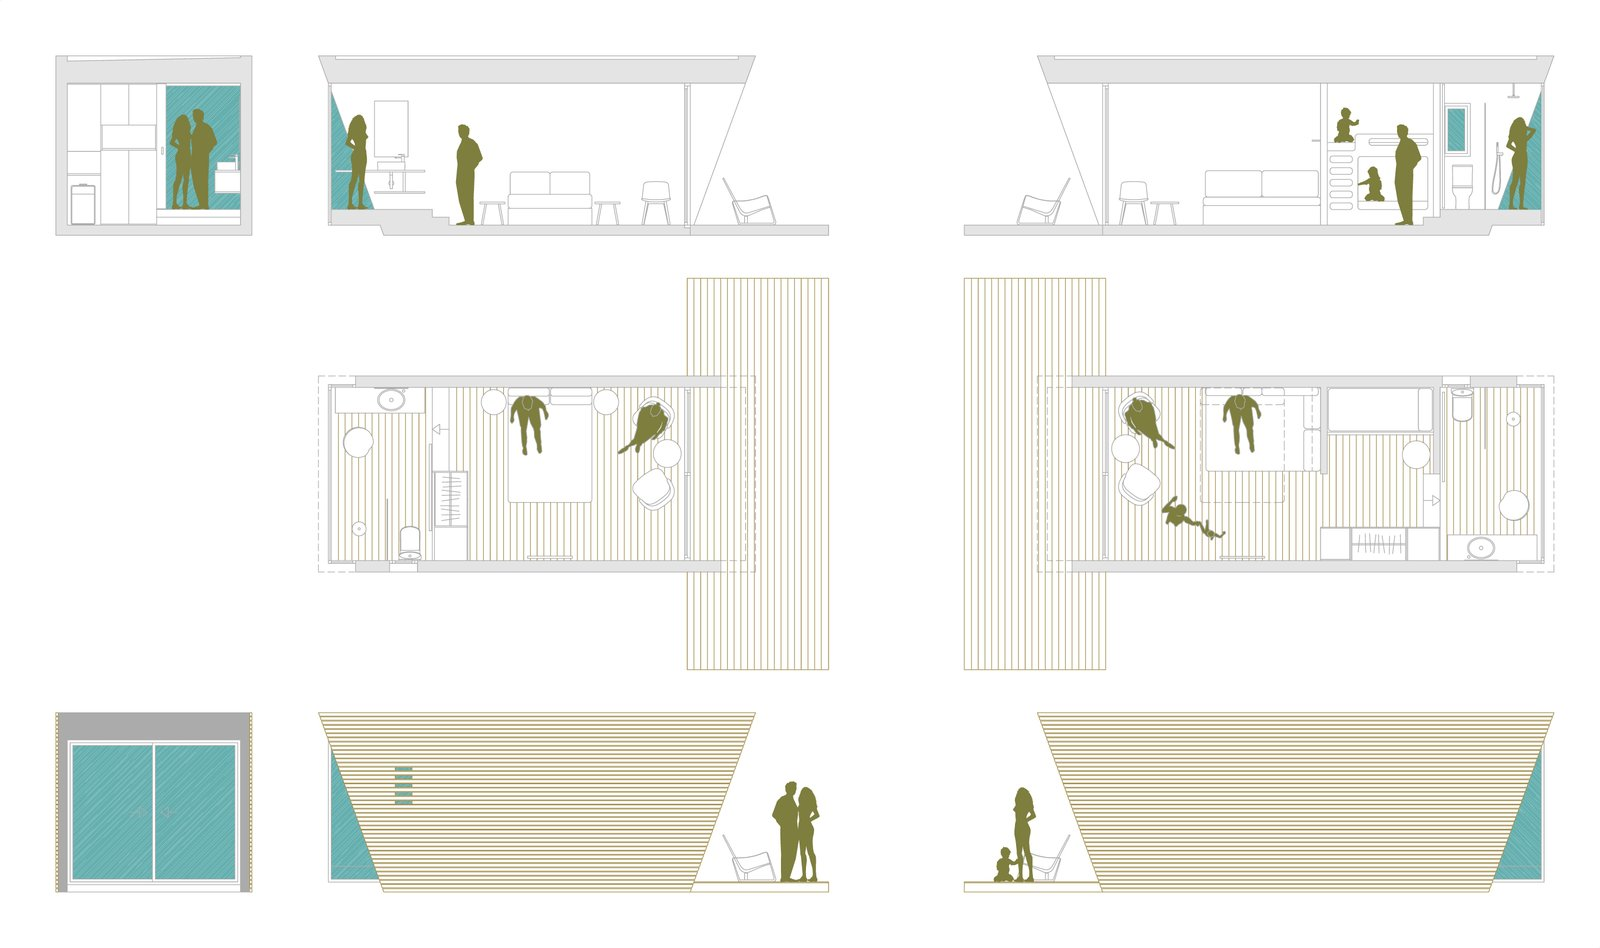 Photo 6 of 9 in This Modular Eco-Hotel Room Is Poised to Drop Into Nearly Any Setting